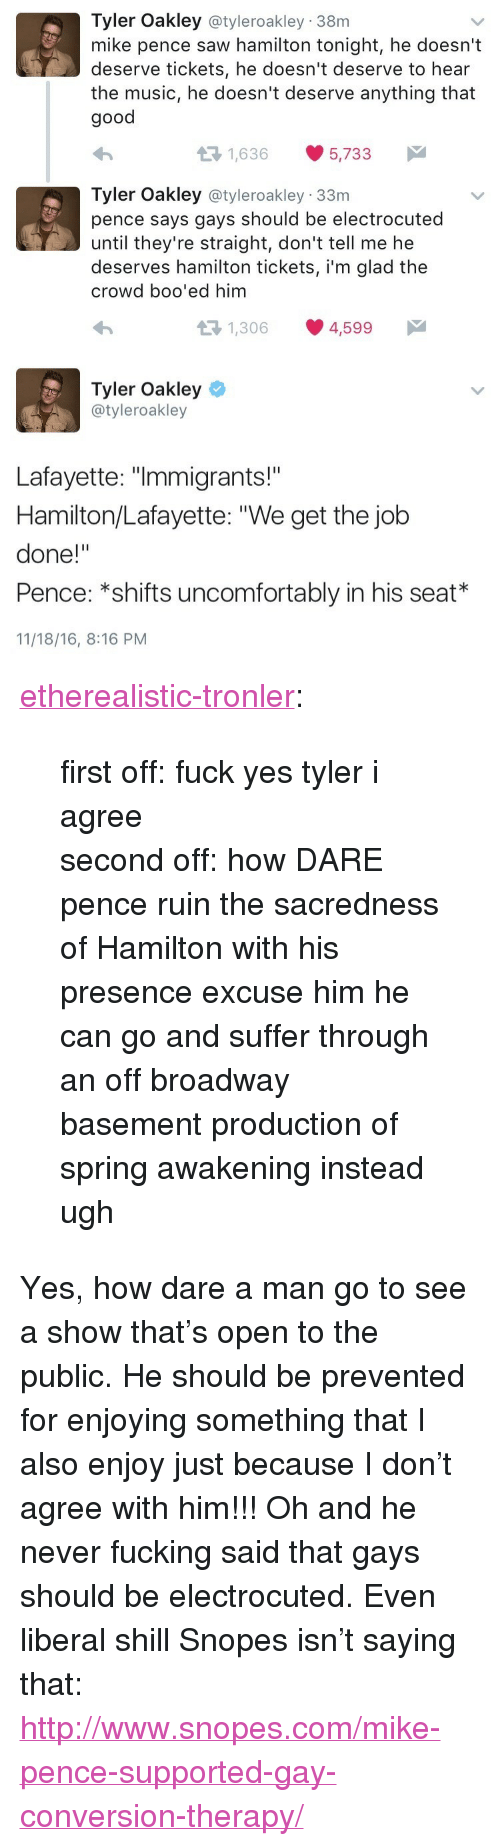 """Fucking, Music, and Saw: Tyler Oakley @tyleroakley 38m  mike pence saw hamilton tonight, he doesn't  deserve tickets, he doesn't deserve to hear  the music, he doesn't deserve anything that  good  1,636 5,733  Tyler Oakley @tyleroakley 33m  pence says gays should be electrocuted  until they're straight, don't tell me he  deserves hamilton tickets, i'm glad the  crowd boo'ed him  1,306 4,599   Tyler Oakley  @tyleroakley  Lafayette: """"Immigrants!""""  Hamilton/Lafayette: """"We get the job  done!""""  Pence: *shifts uncomfortably in his seat*  11/18/16, 8:16 PM <p><a href=""""http://etherealistic-tronler.tumblr.com/post/153366196027/first-off-fuck-yes-tyler-i-agree-second-off"""" class=""""tumblr_blog"""">etherealistic-tronler</a>:</p> <blockquote> <p>first off: fuck yes tyler i agree </p>  <p>second off: how DARE pence ruin the sacredness of Hamilton with his presence excuse him he can go and suffer through an off broadway basement production of spring awakening instead ugh</p> </blockquote> <p>Yes, how dare a man go to see a show that's open to the public. He should be prevented for enjoying something that I also enjoy just because I don't agree with him!!! Oh and he never fucking said that gays should be electrocuted. Even liberal shill Snopes isn&rsquo;t saying that: <a href=""""http://www.snopes.com/mike-pence-supported-gay-conversion-therapy/"""">http://www.snopes.com/mike-pence-supported-gay-conversion-therapy/</a></p>"""